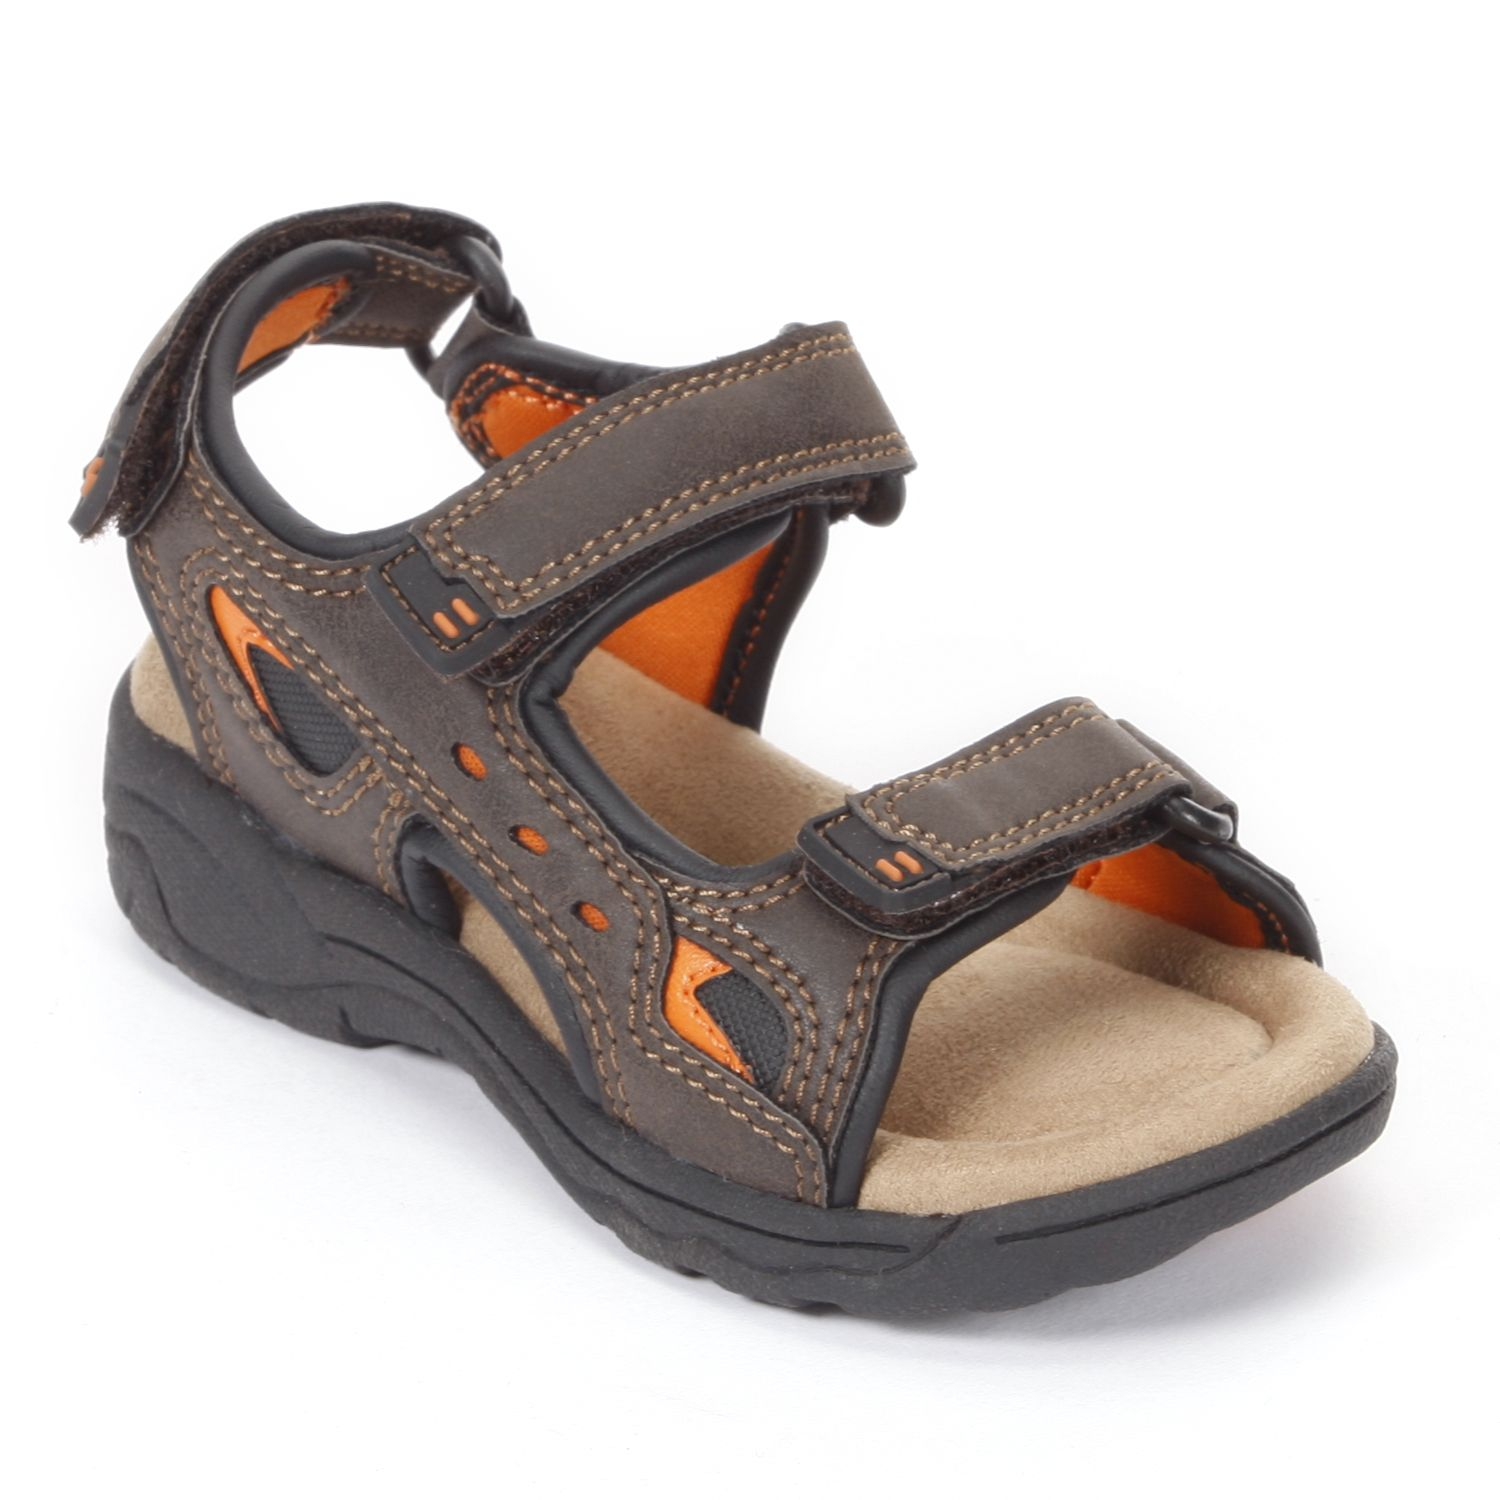 Sonoma Life + Style River Sandals - Toddler Boys - $34.99